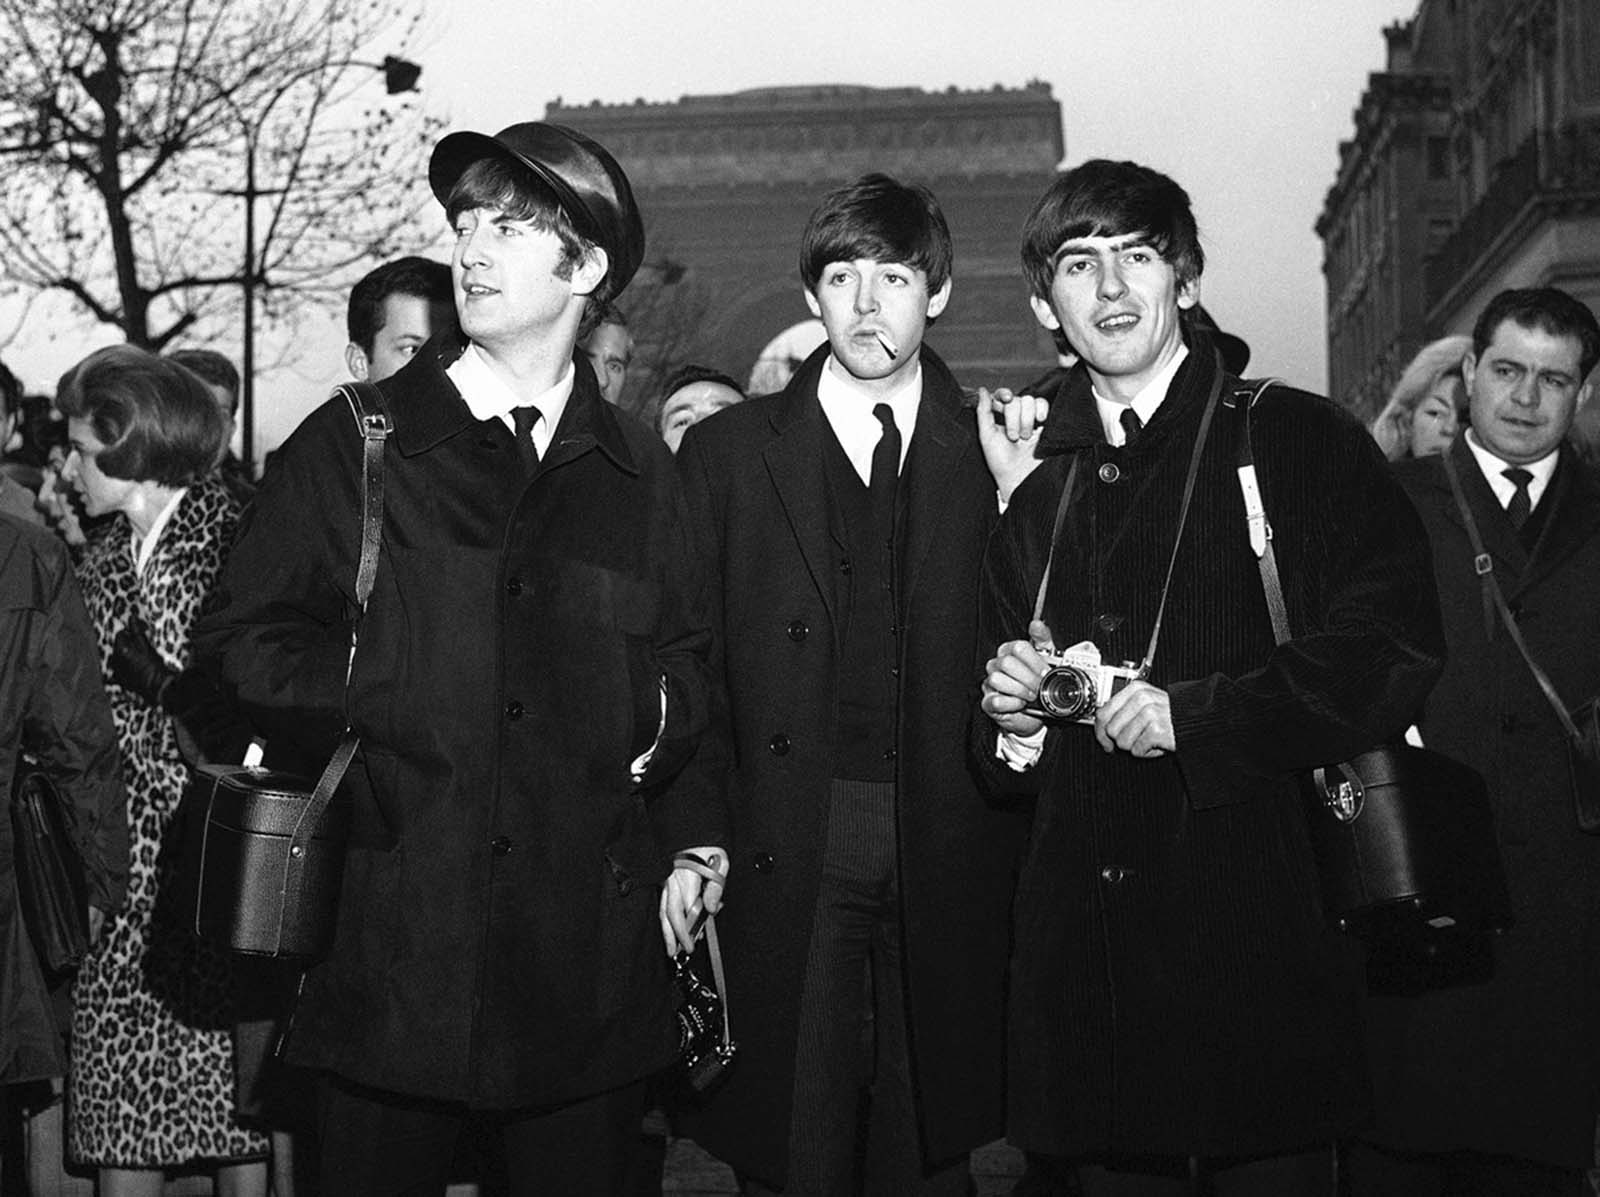 Sightseeing in Paris, on January 15, 1964, the day before their opening at the Olympia Theatre in Paris, three of Britain's four Beatles pause for a look around on the Champs Elysees. From left John Lennon, Paul McCartney and George Harrison. In the background is the Arc de Triomphe.